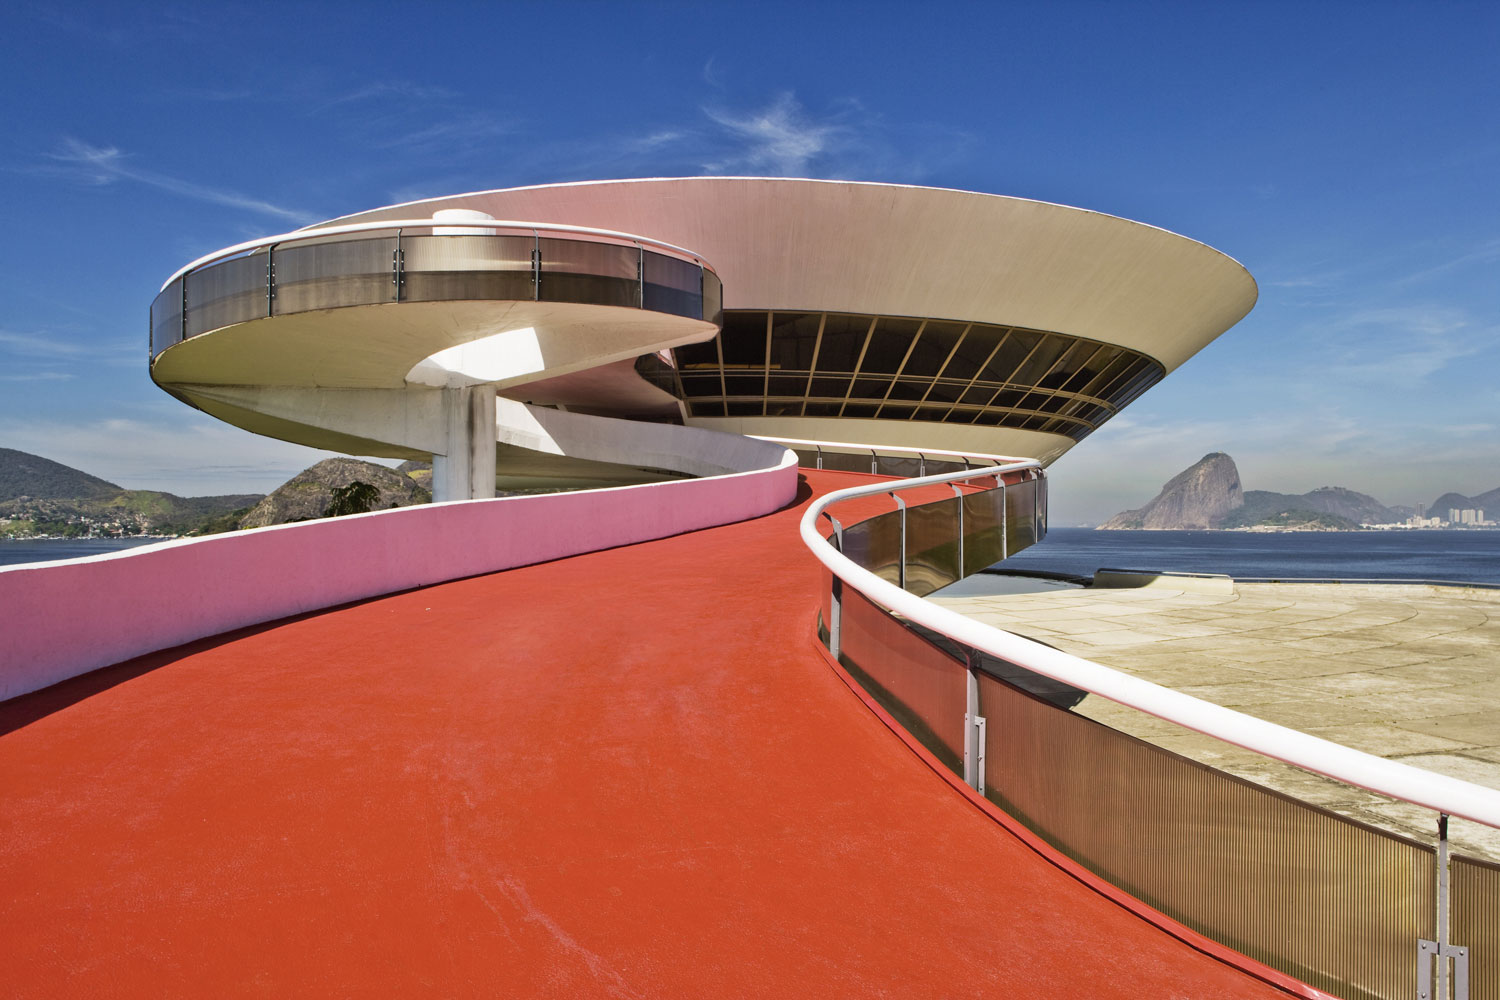 The famous Brazilian architect Oscar Niemeyer constructed the Niterói Contemporary Art Museum, known for both its amazing contemporary art exhibits and UFO-like appearance.